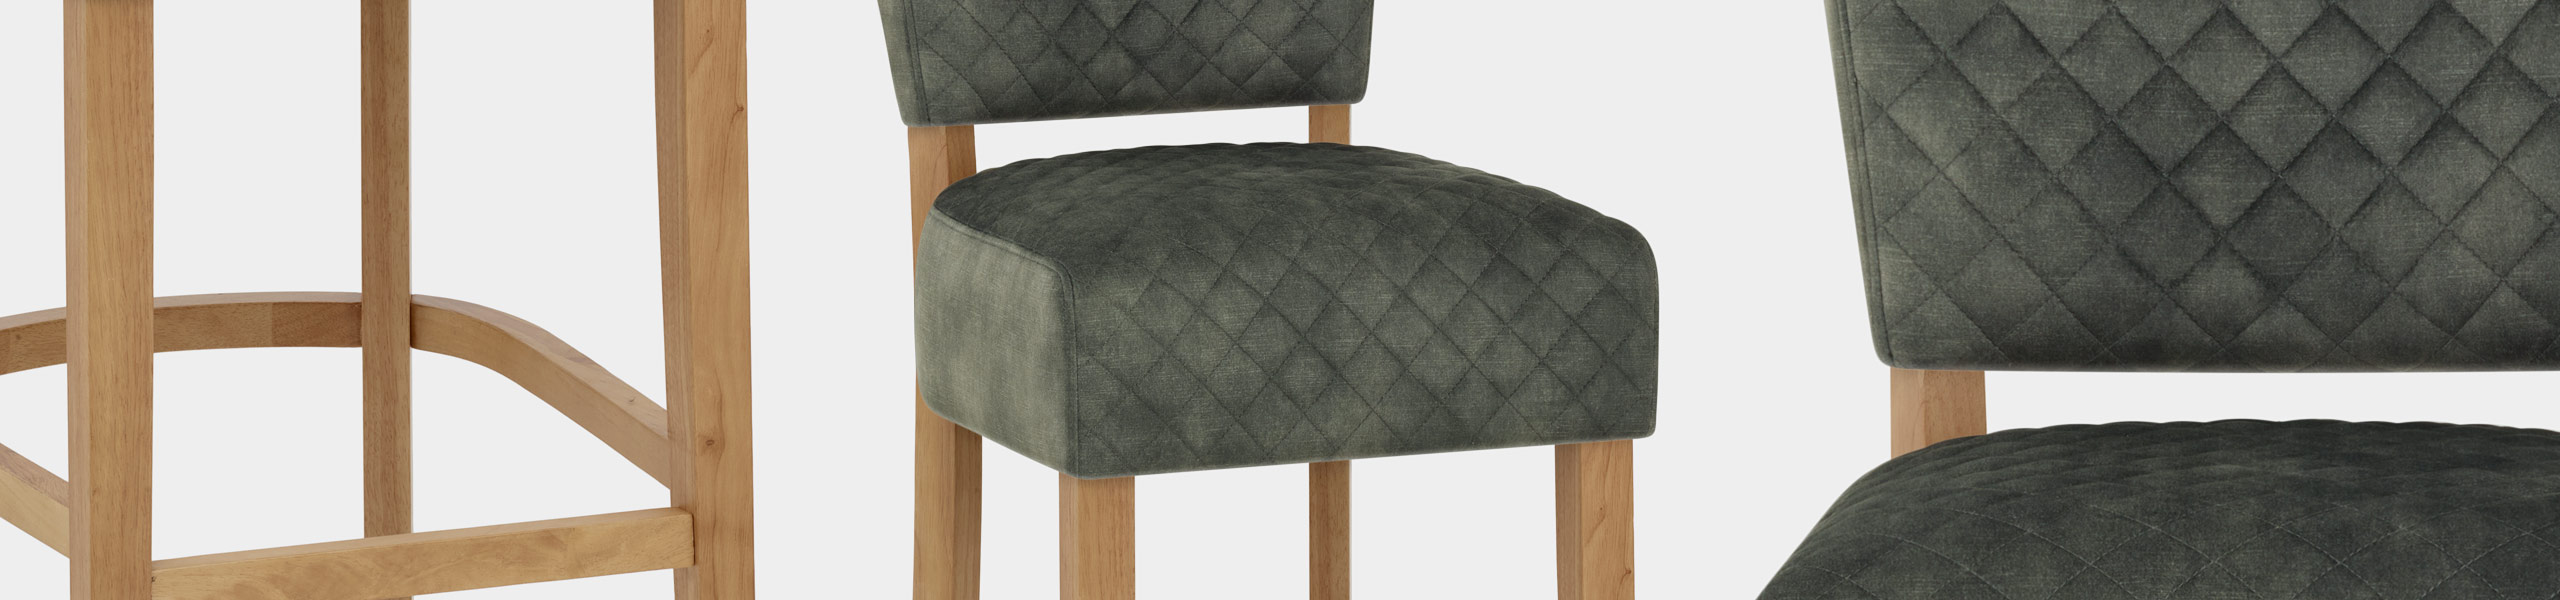 Ramsay Oak Bar Stool Green Velvet Video Banner